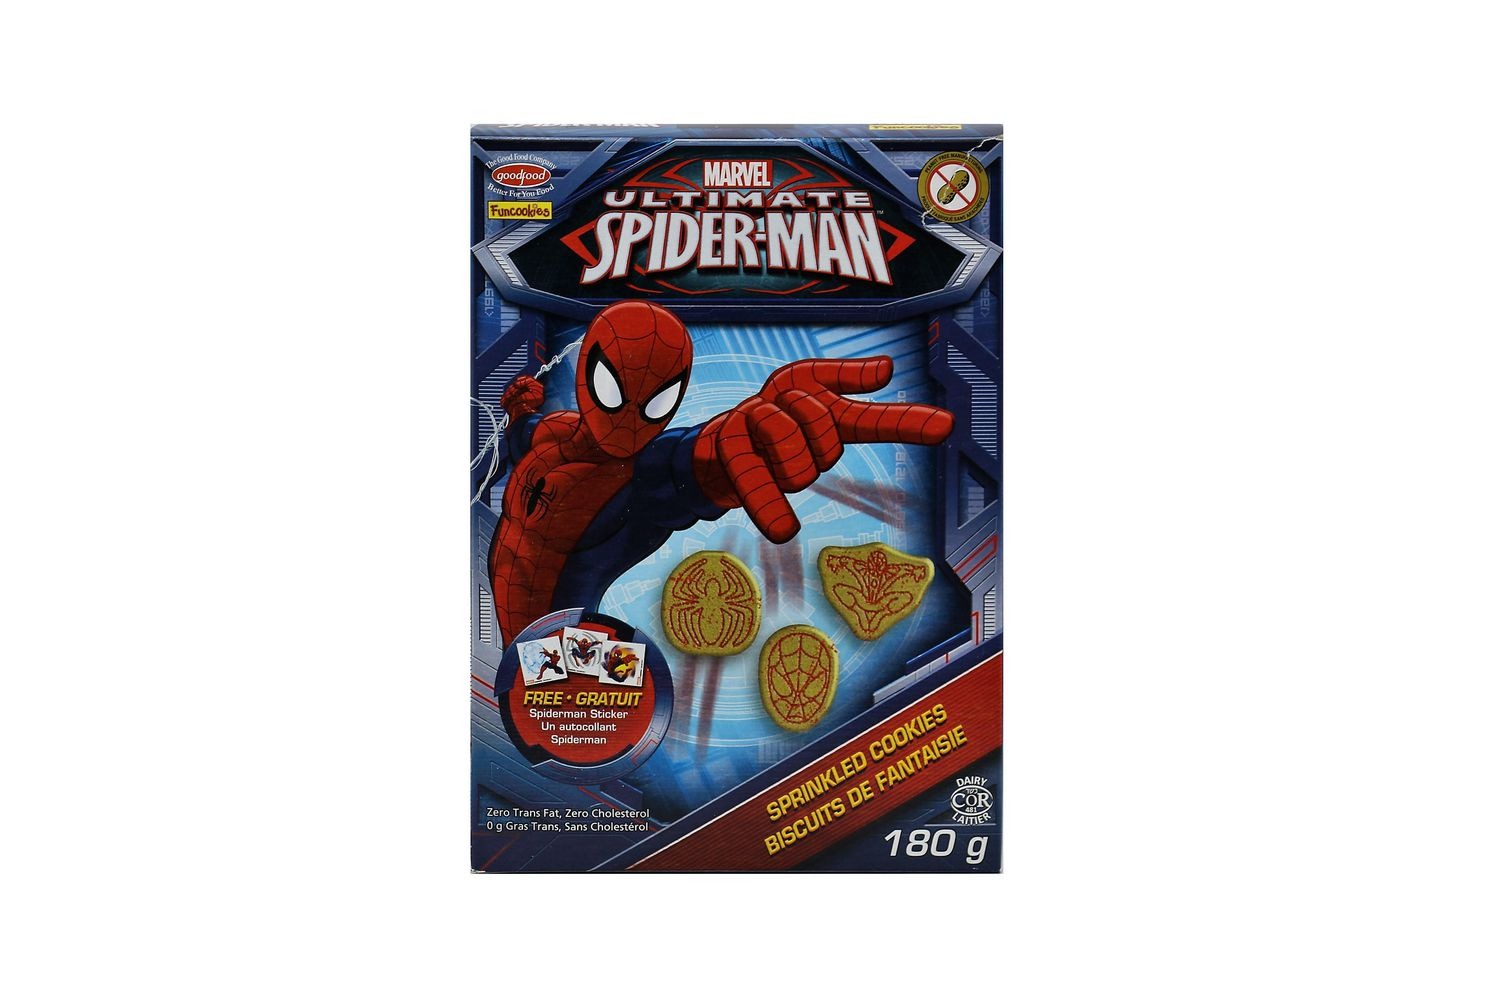 mavel ultimate spiderman sprinkled cookies walmart canada - Spider Man Gratuit